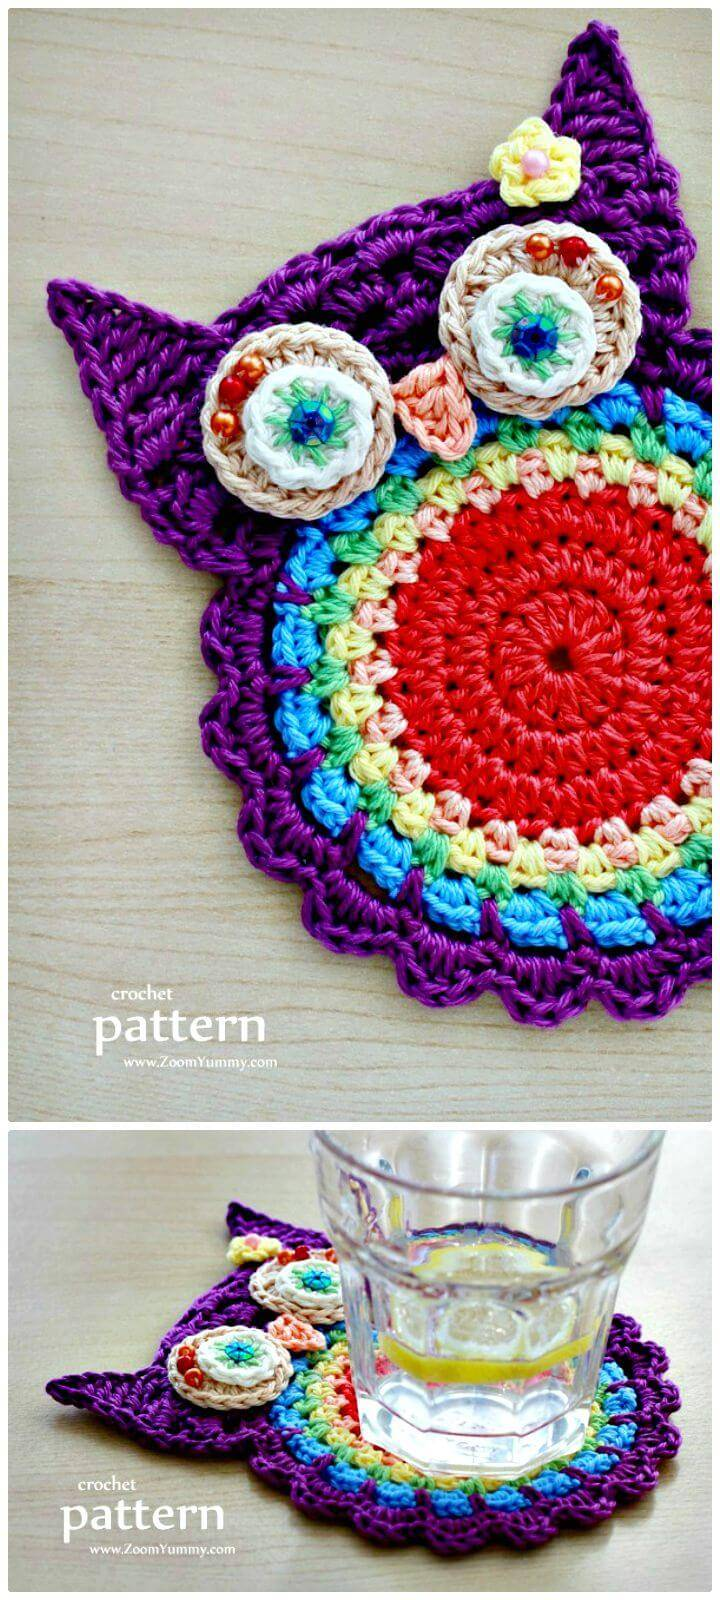 Crochet owl 92 free crochet owl patterns diy crafts free crochet owl coasters appliques new pattern bankloansurffo Gallery